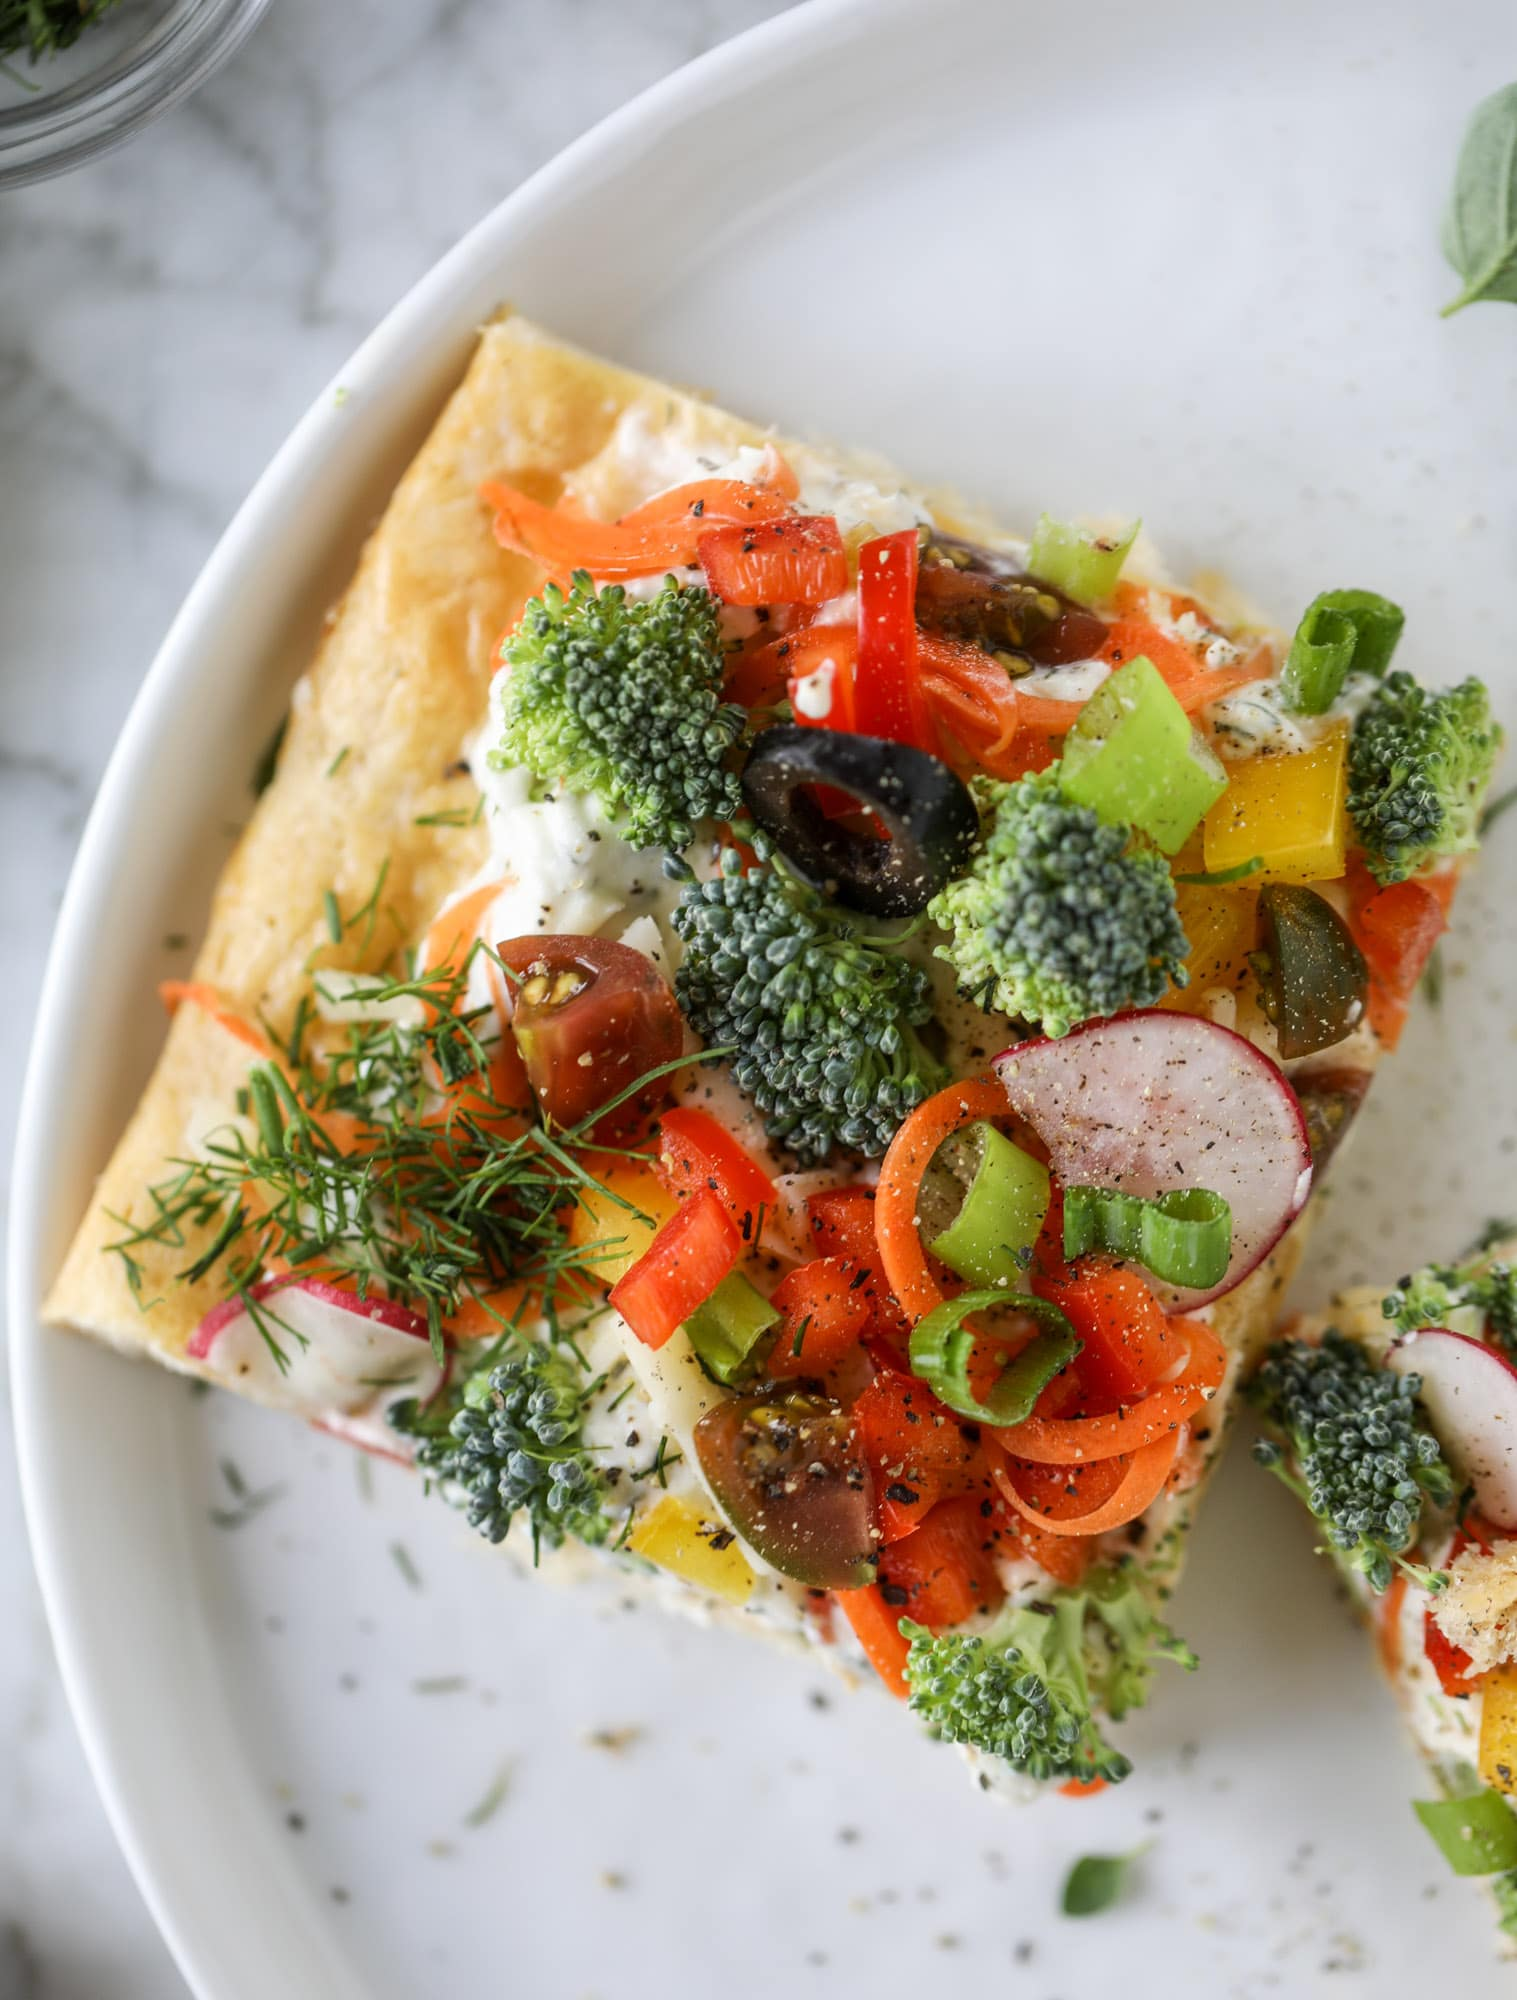 My mom's classic appetizer, the old school veggie pizza, is perfect for summer parties both indoor and out! A flaky pastry crust, a flavorful mascarpone greek yogurt base and tons of fresh chopped vegetables on top. It's a winning combination! I howsweeteats.com #veggie #pizza #appetizer #summer #crescentrolls #greekyogurt